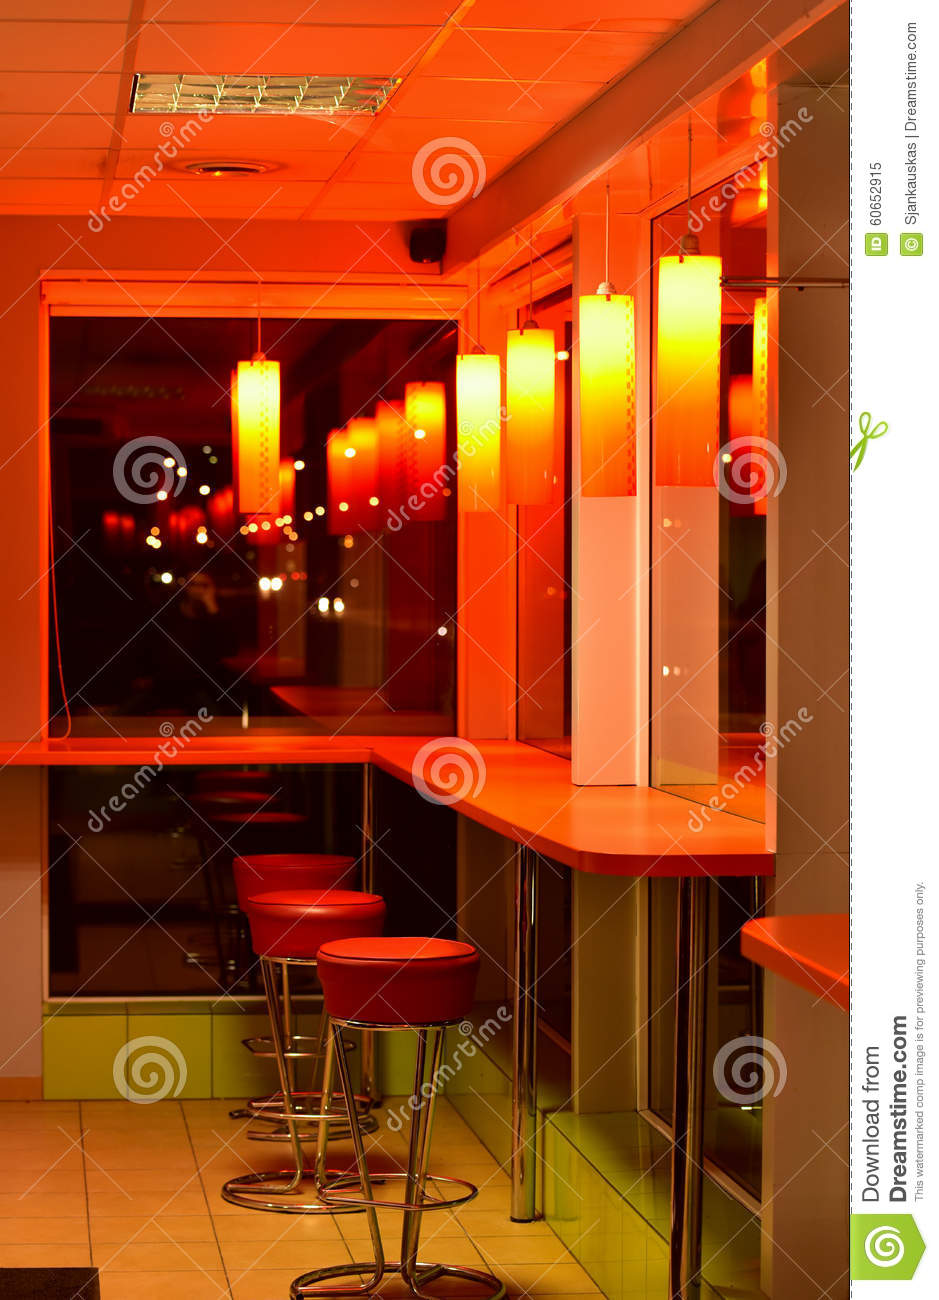 cafe bar interior night scene stock photo - image: 60652915